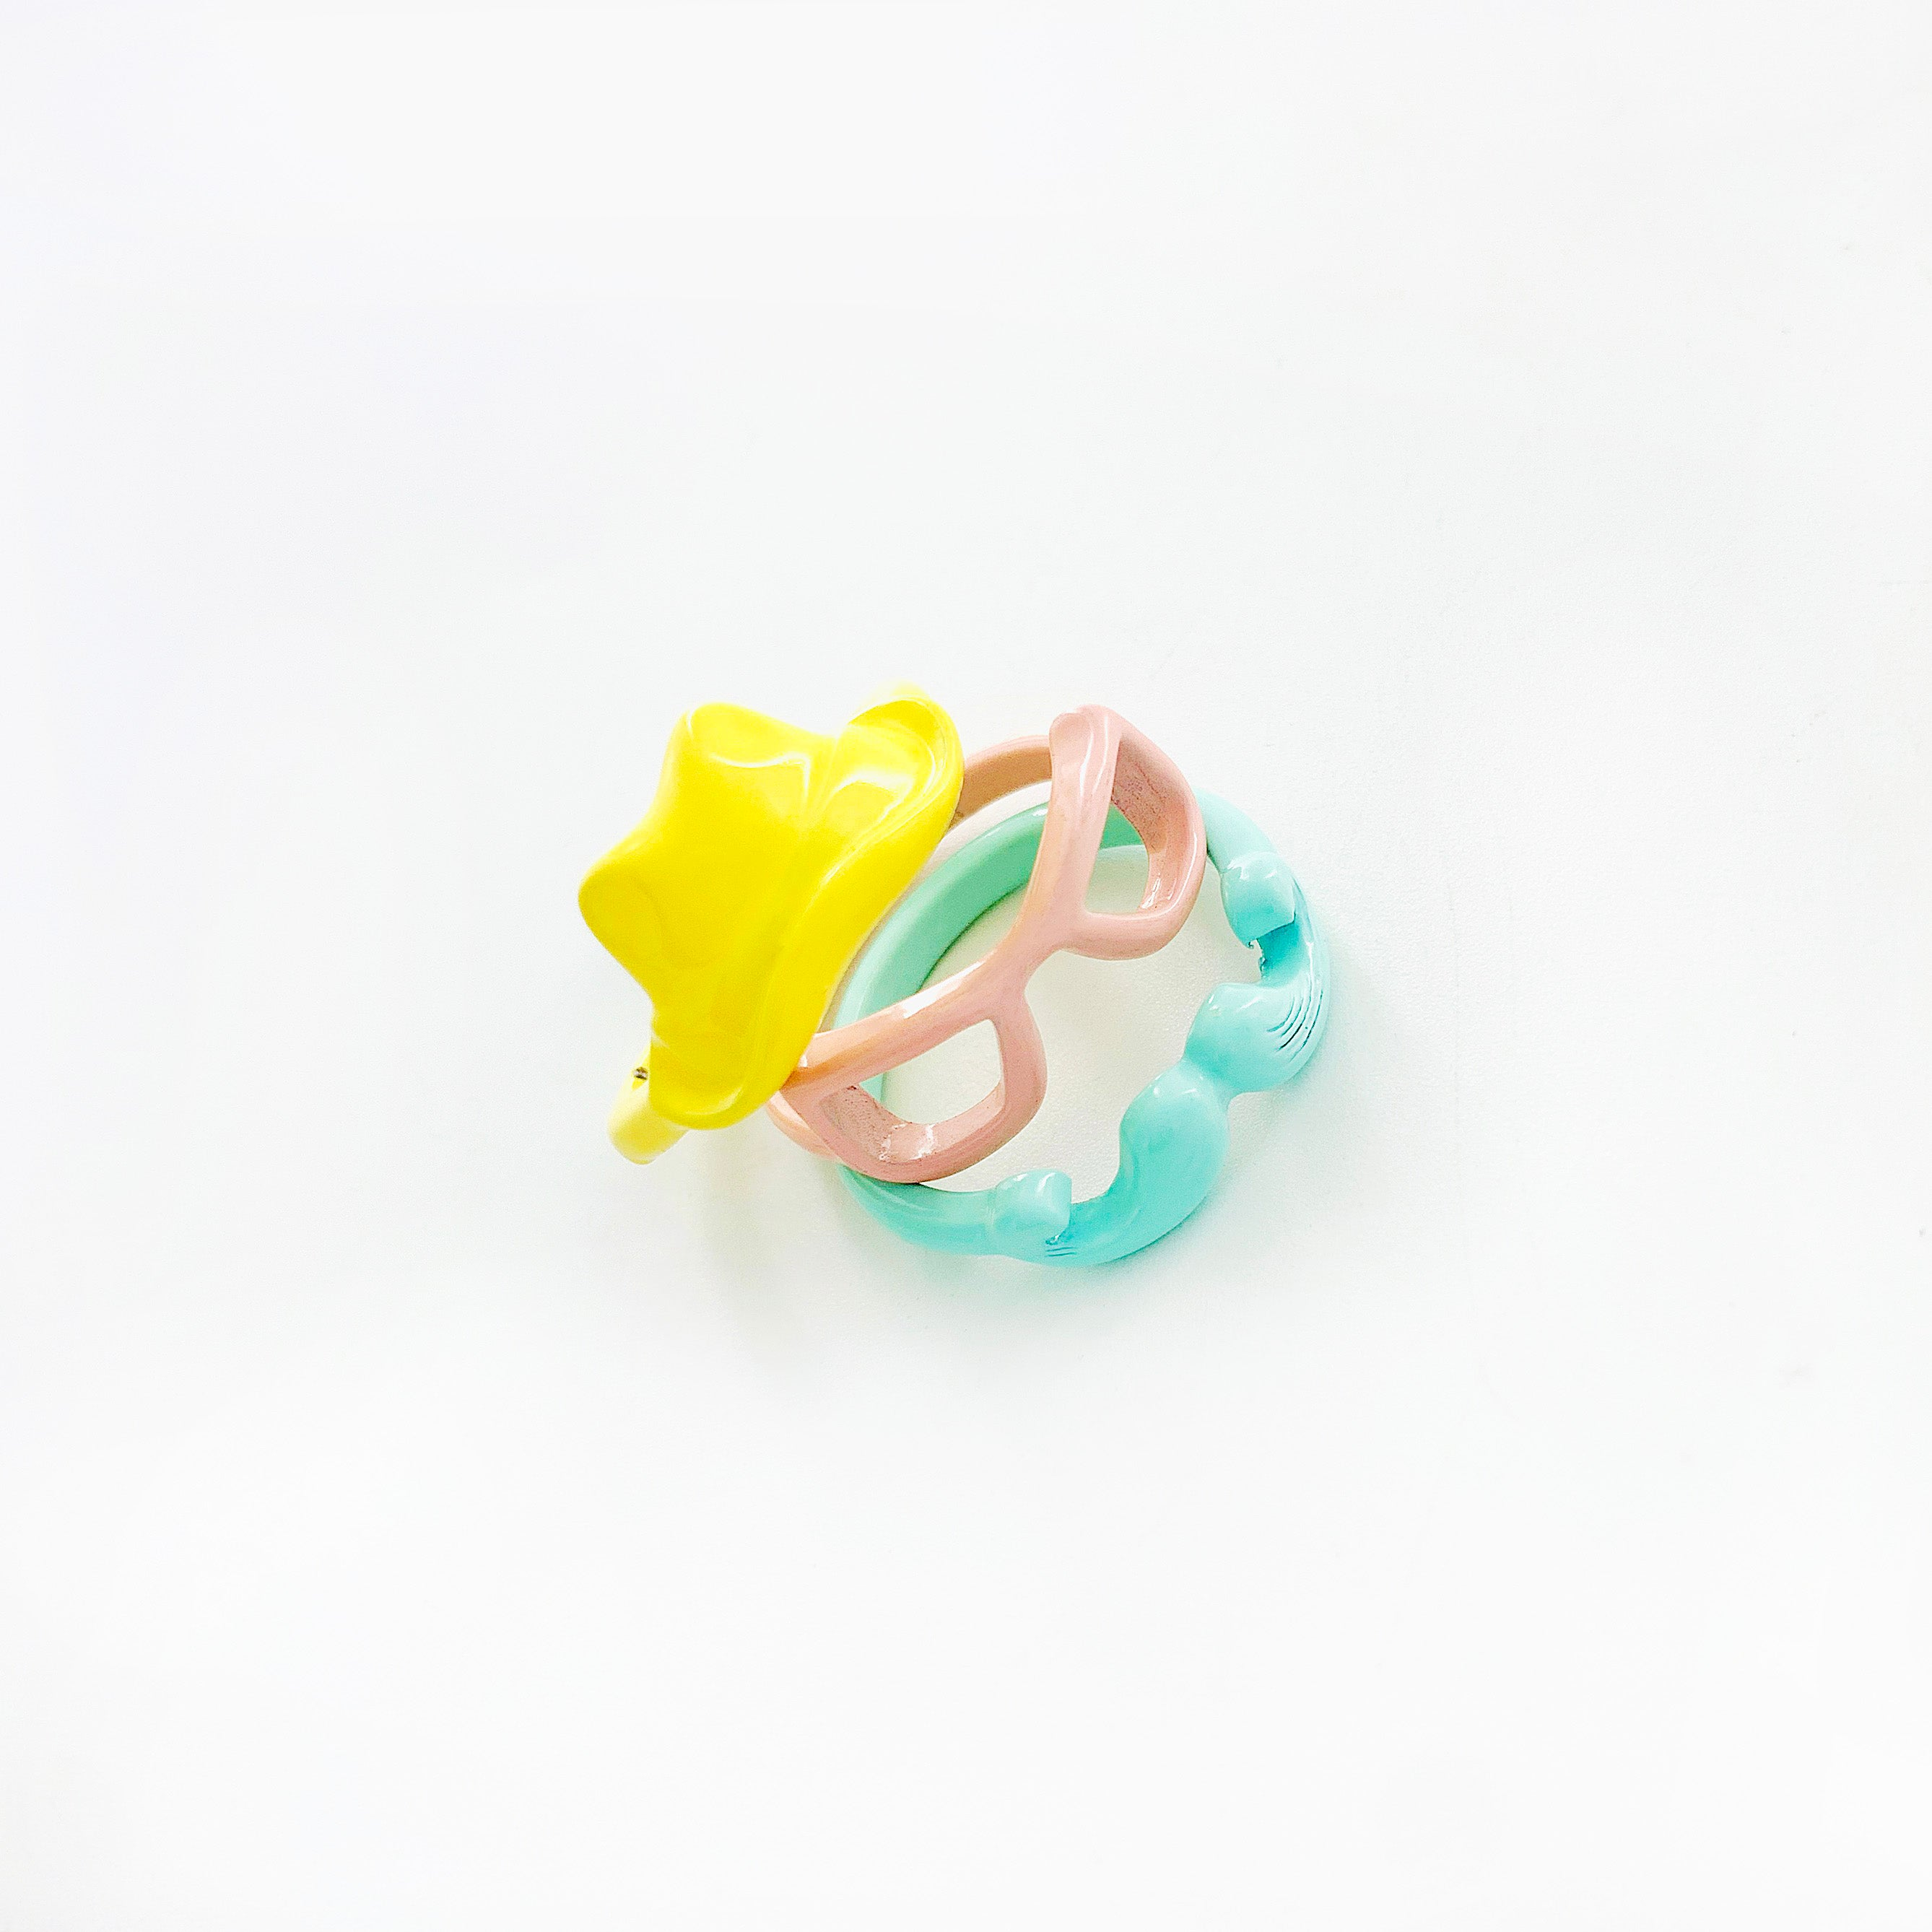 Enamel painted mint green moustache ring